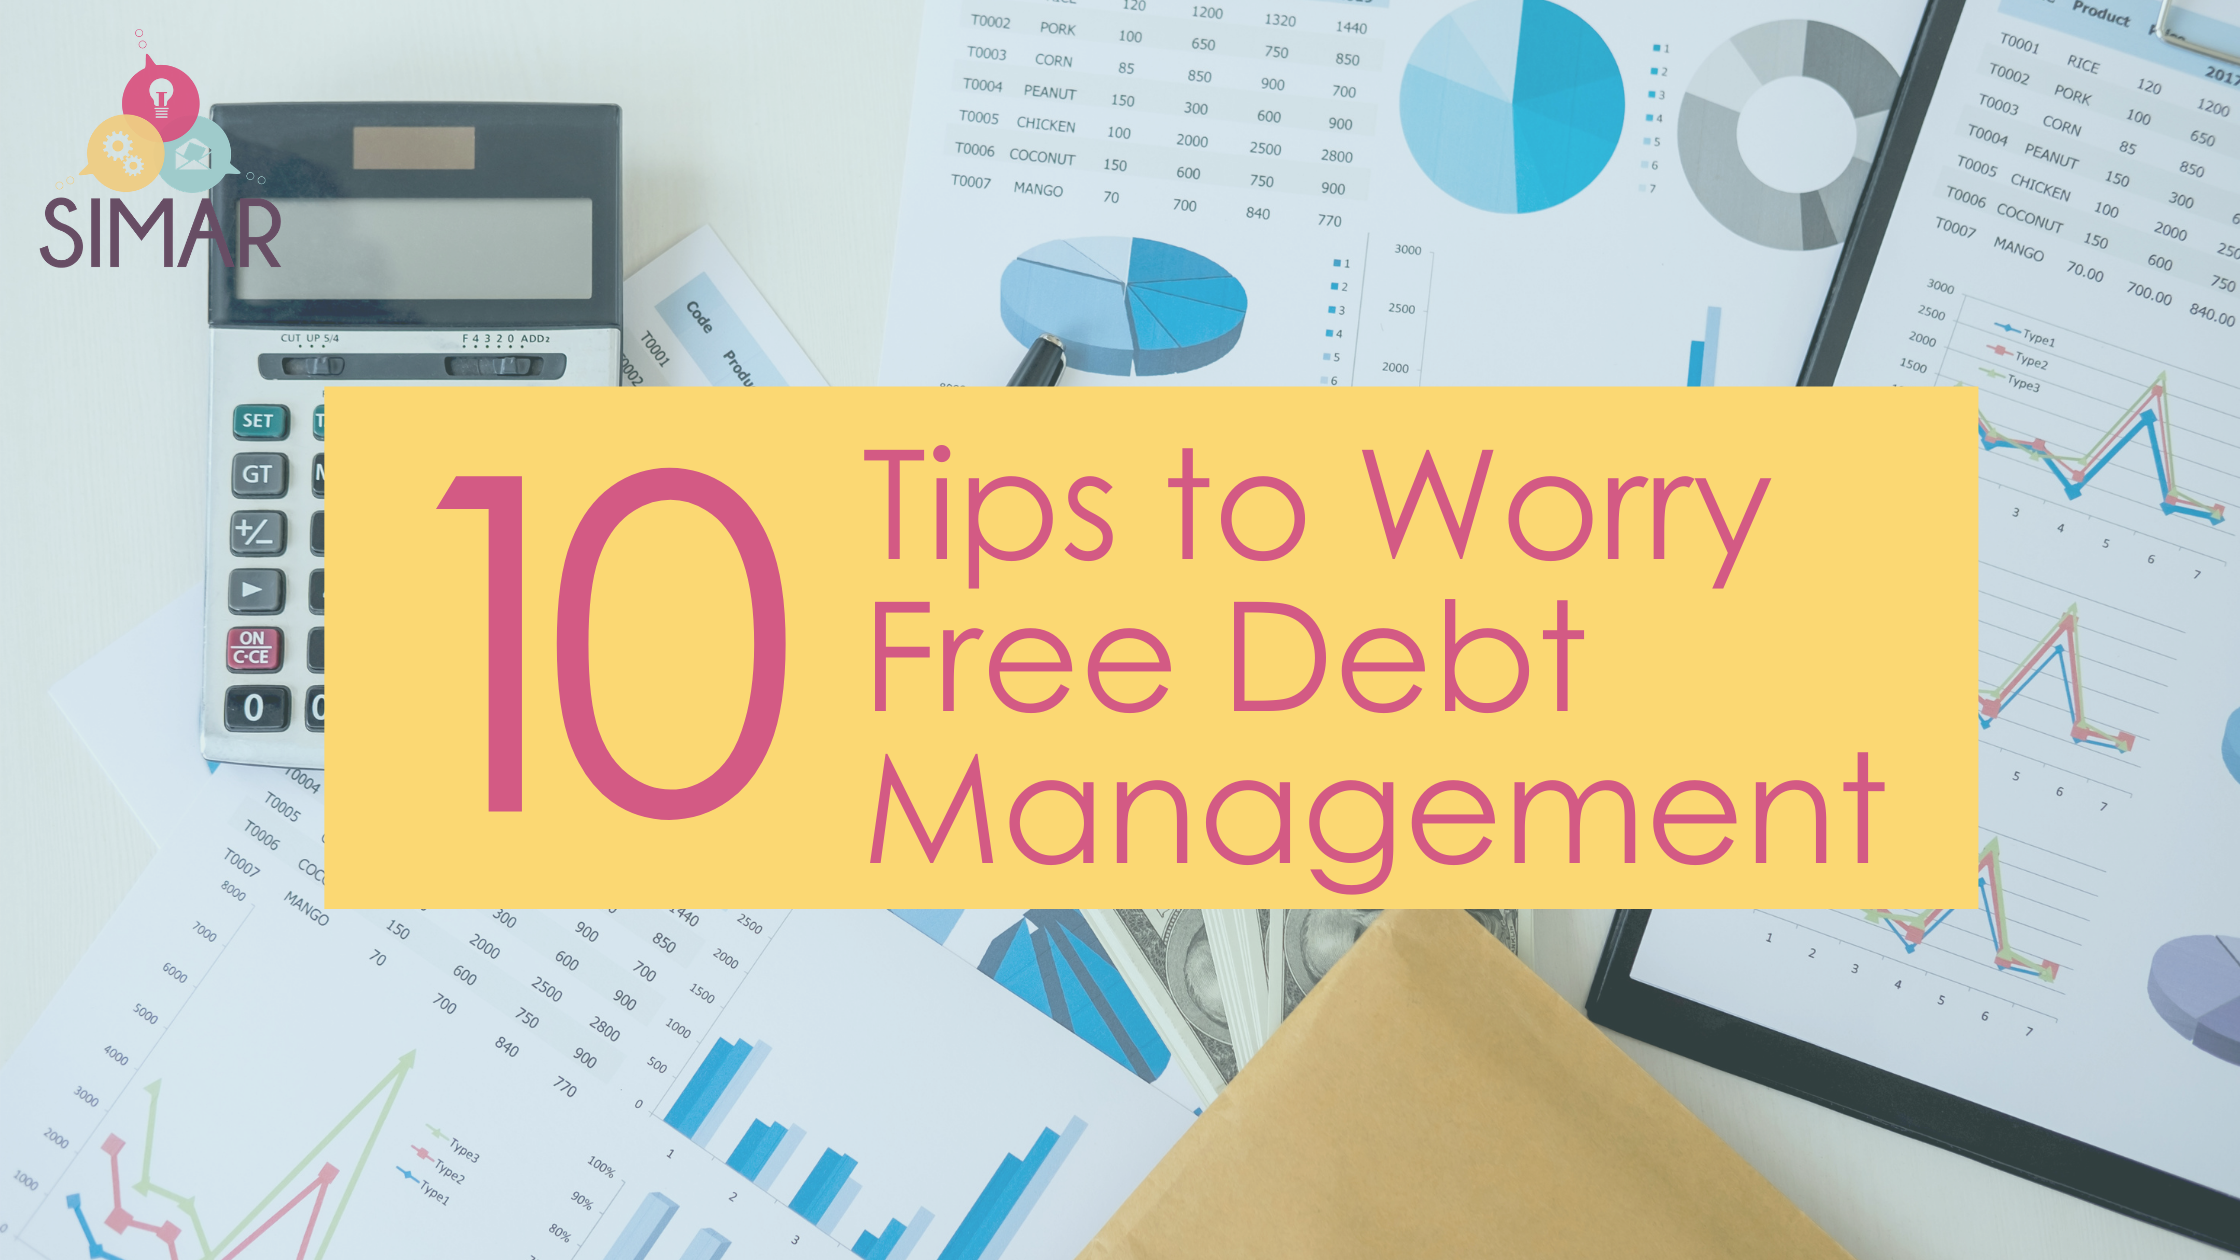 10 Tips to Worry Free Debt Management